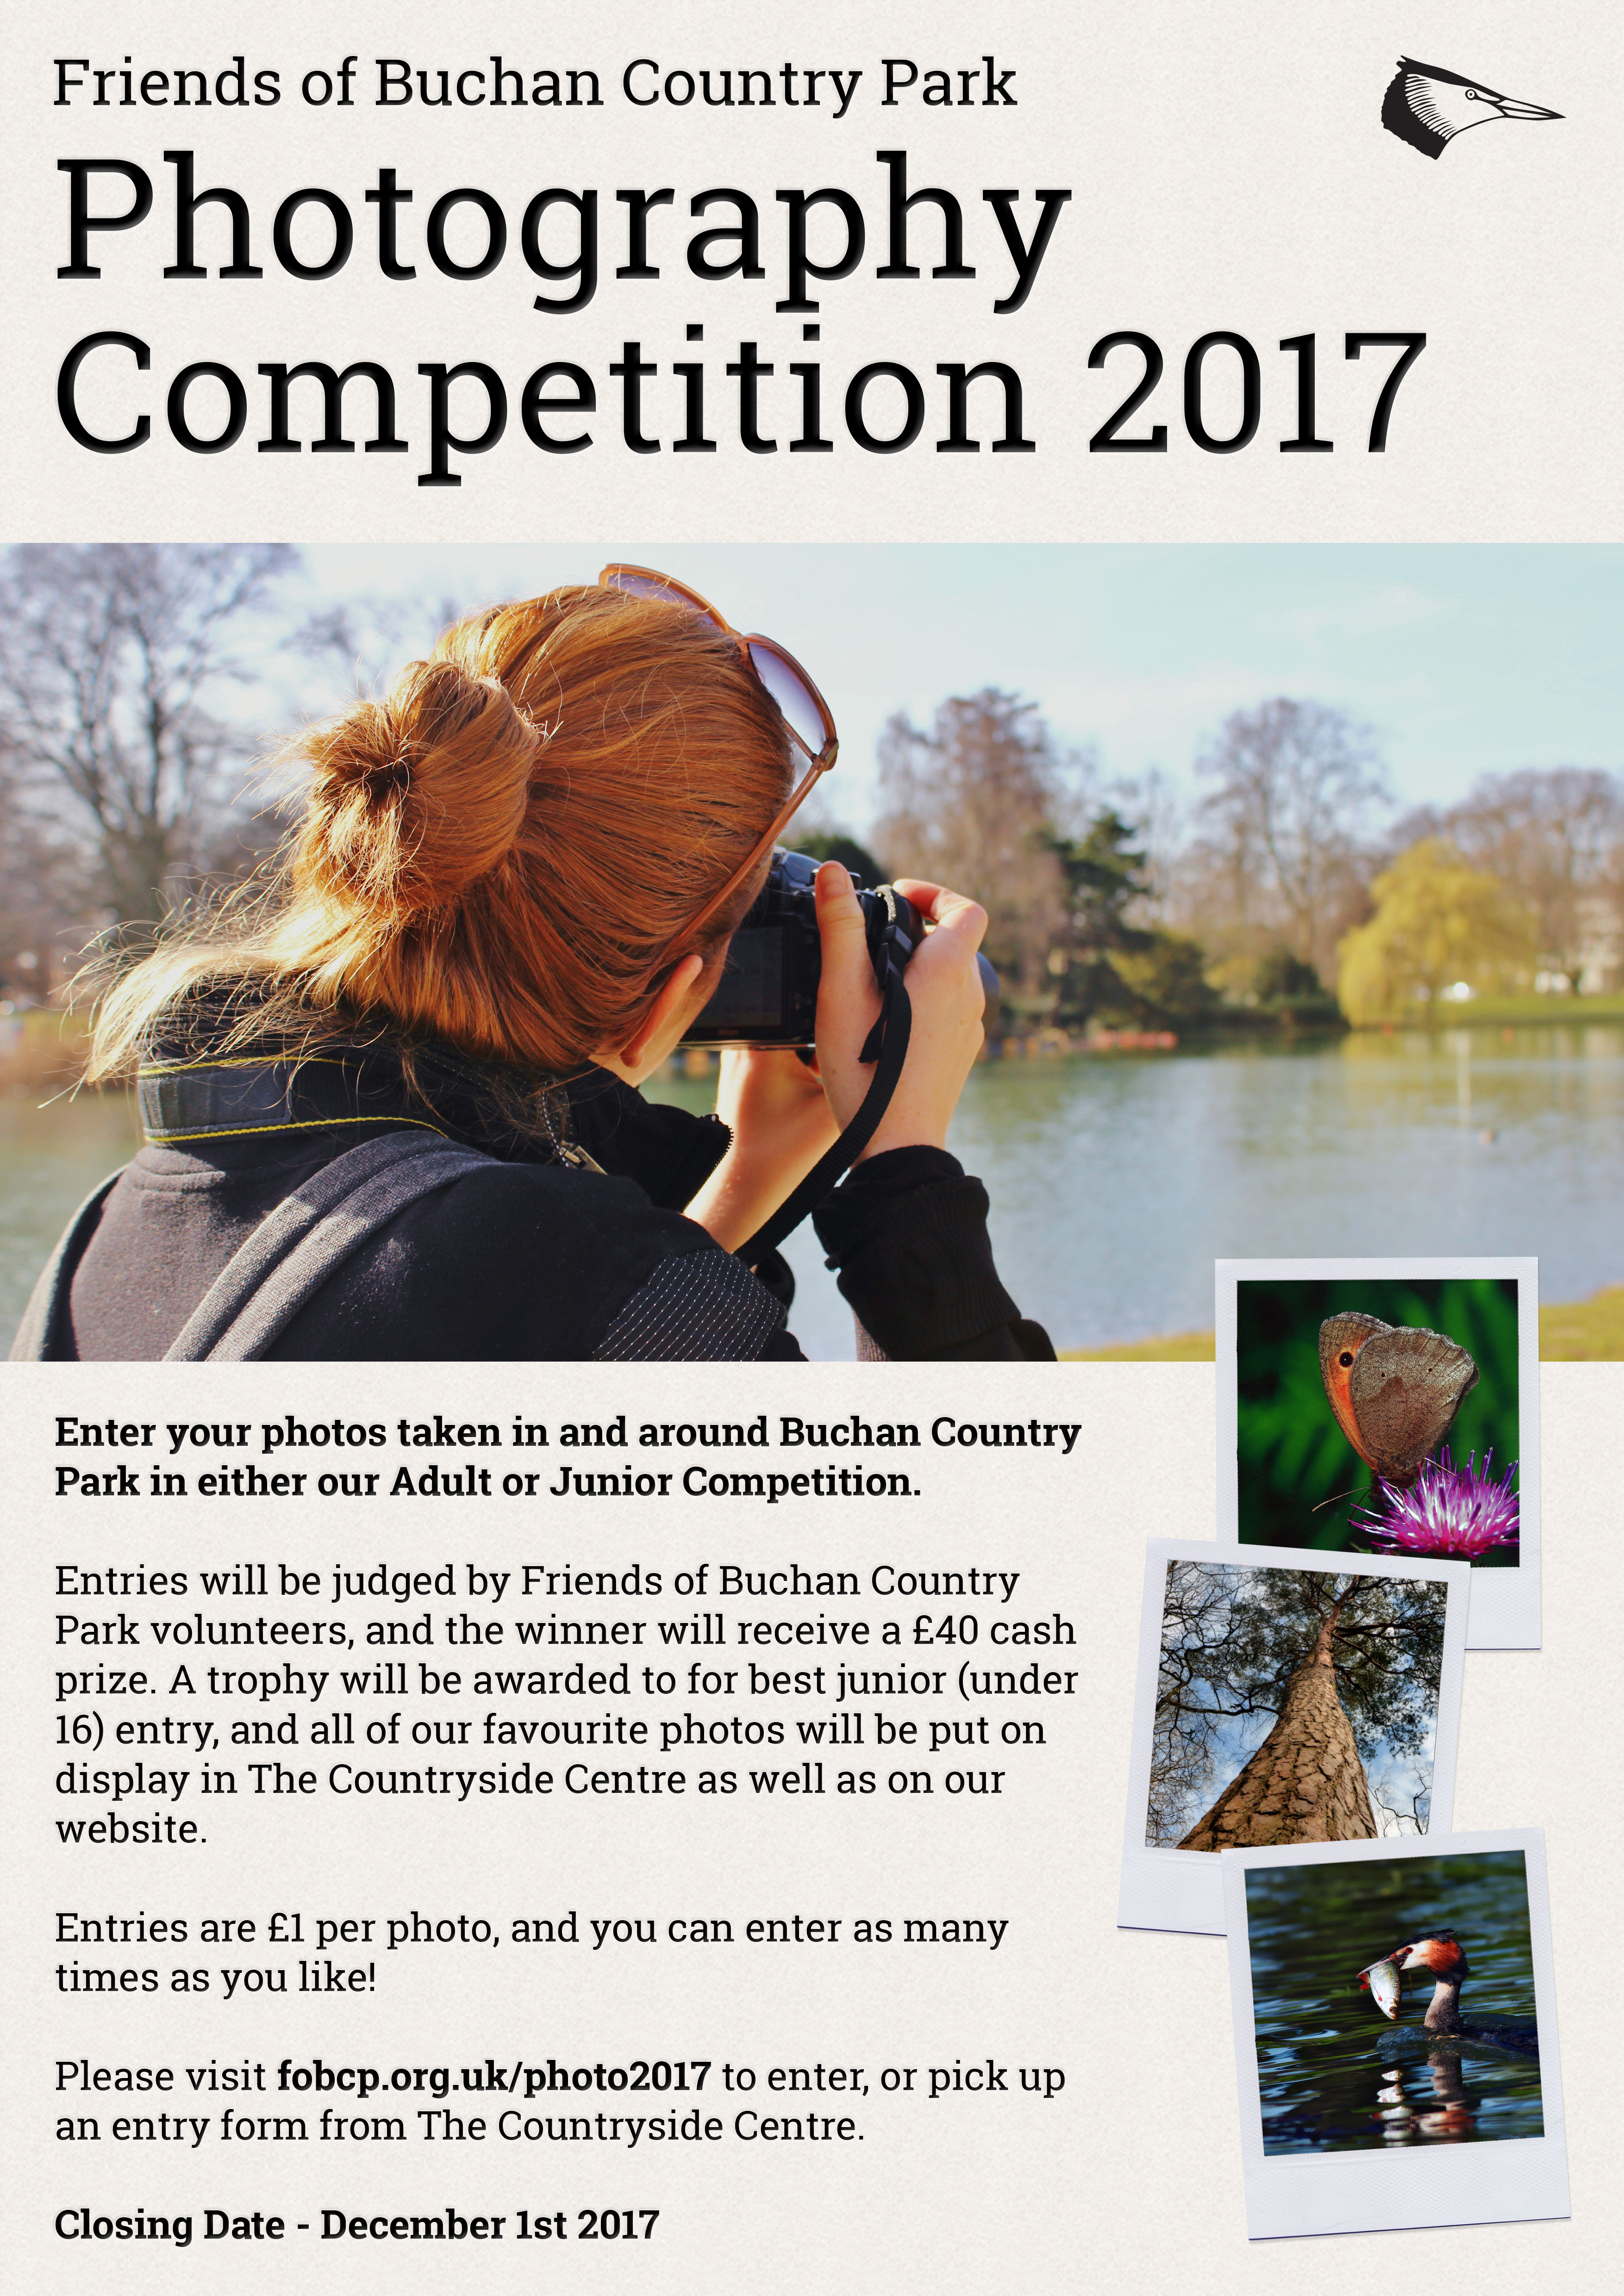 Buchan Country Park Photography Competition 2017 Poster